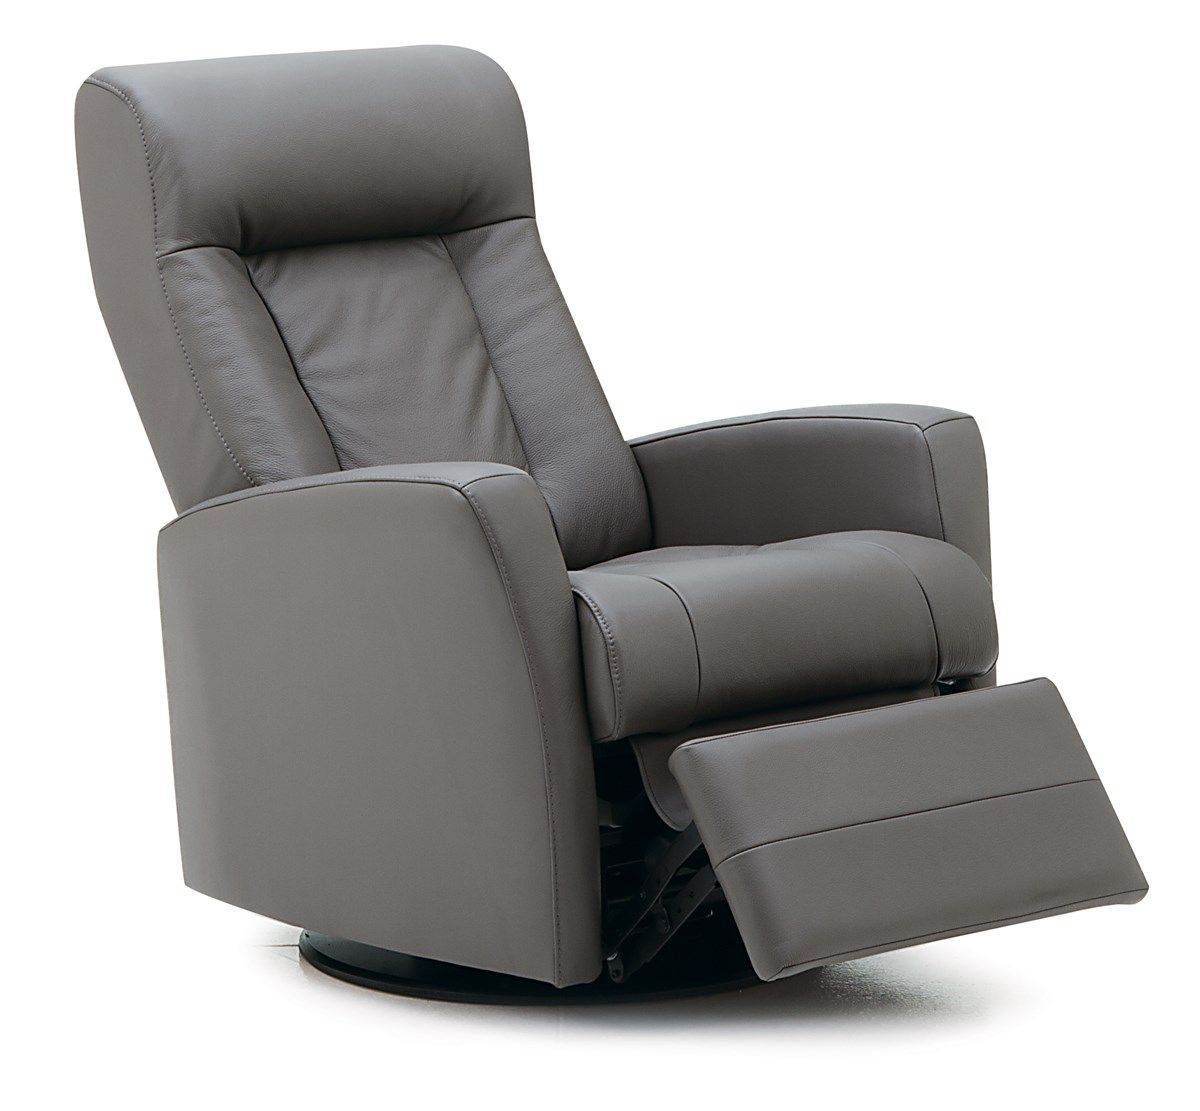 This Modern Yet Comfortable Recliner Is A Must For Anyone Who